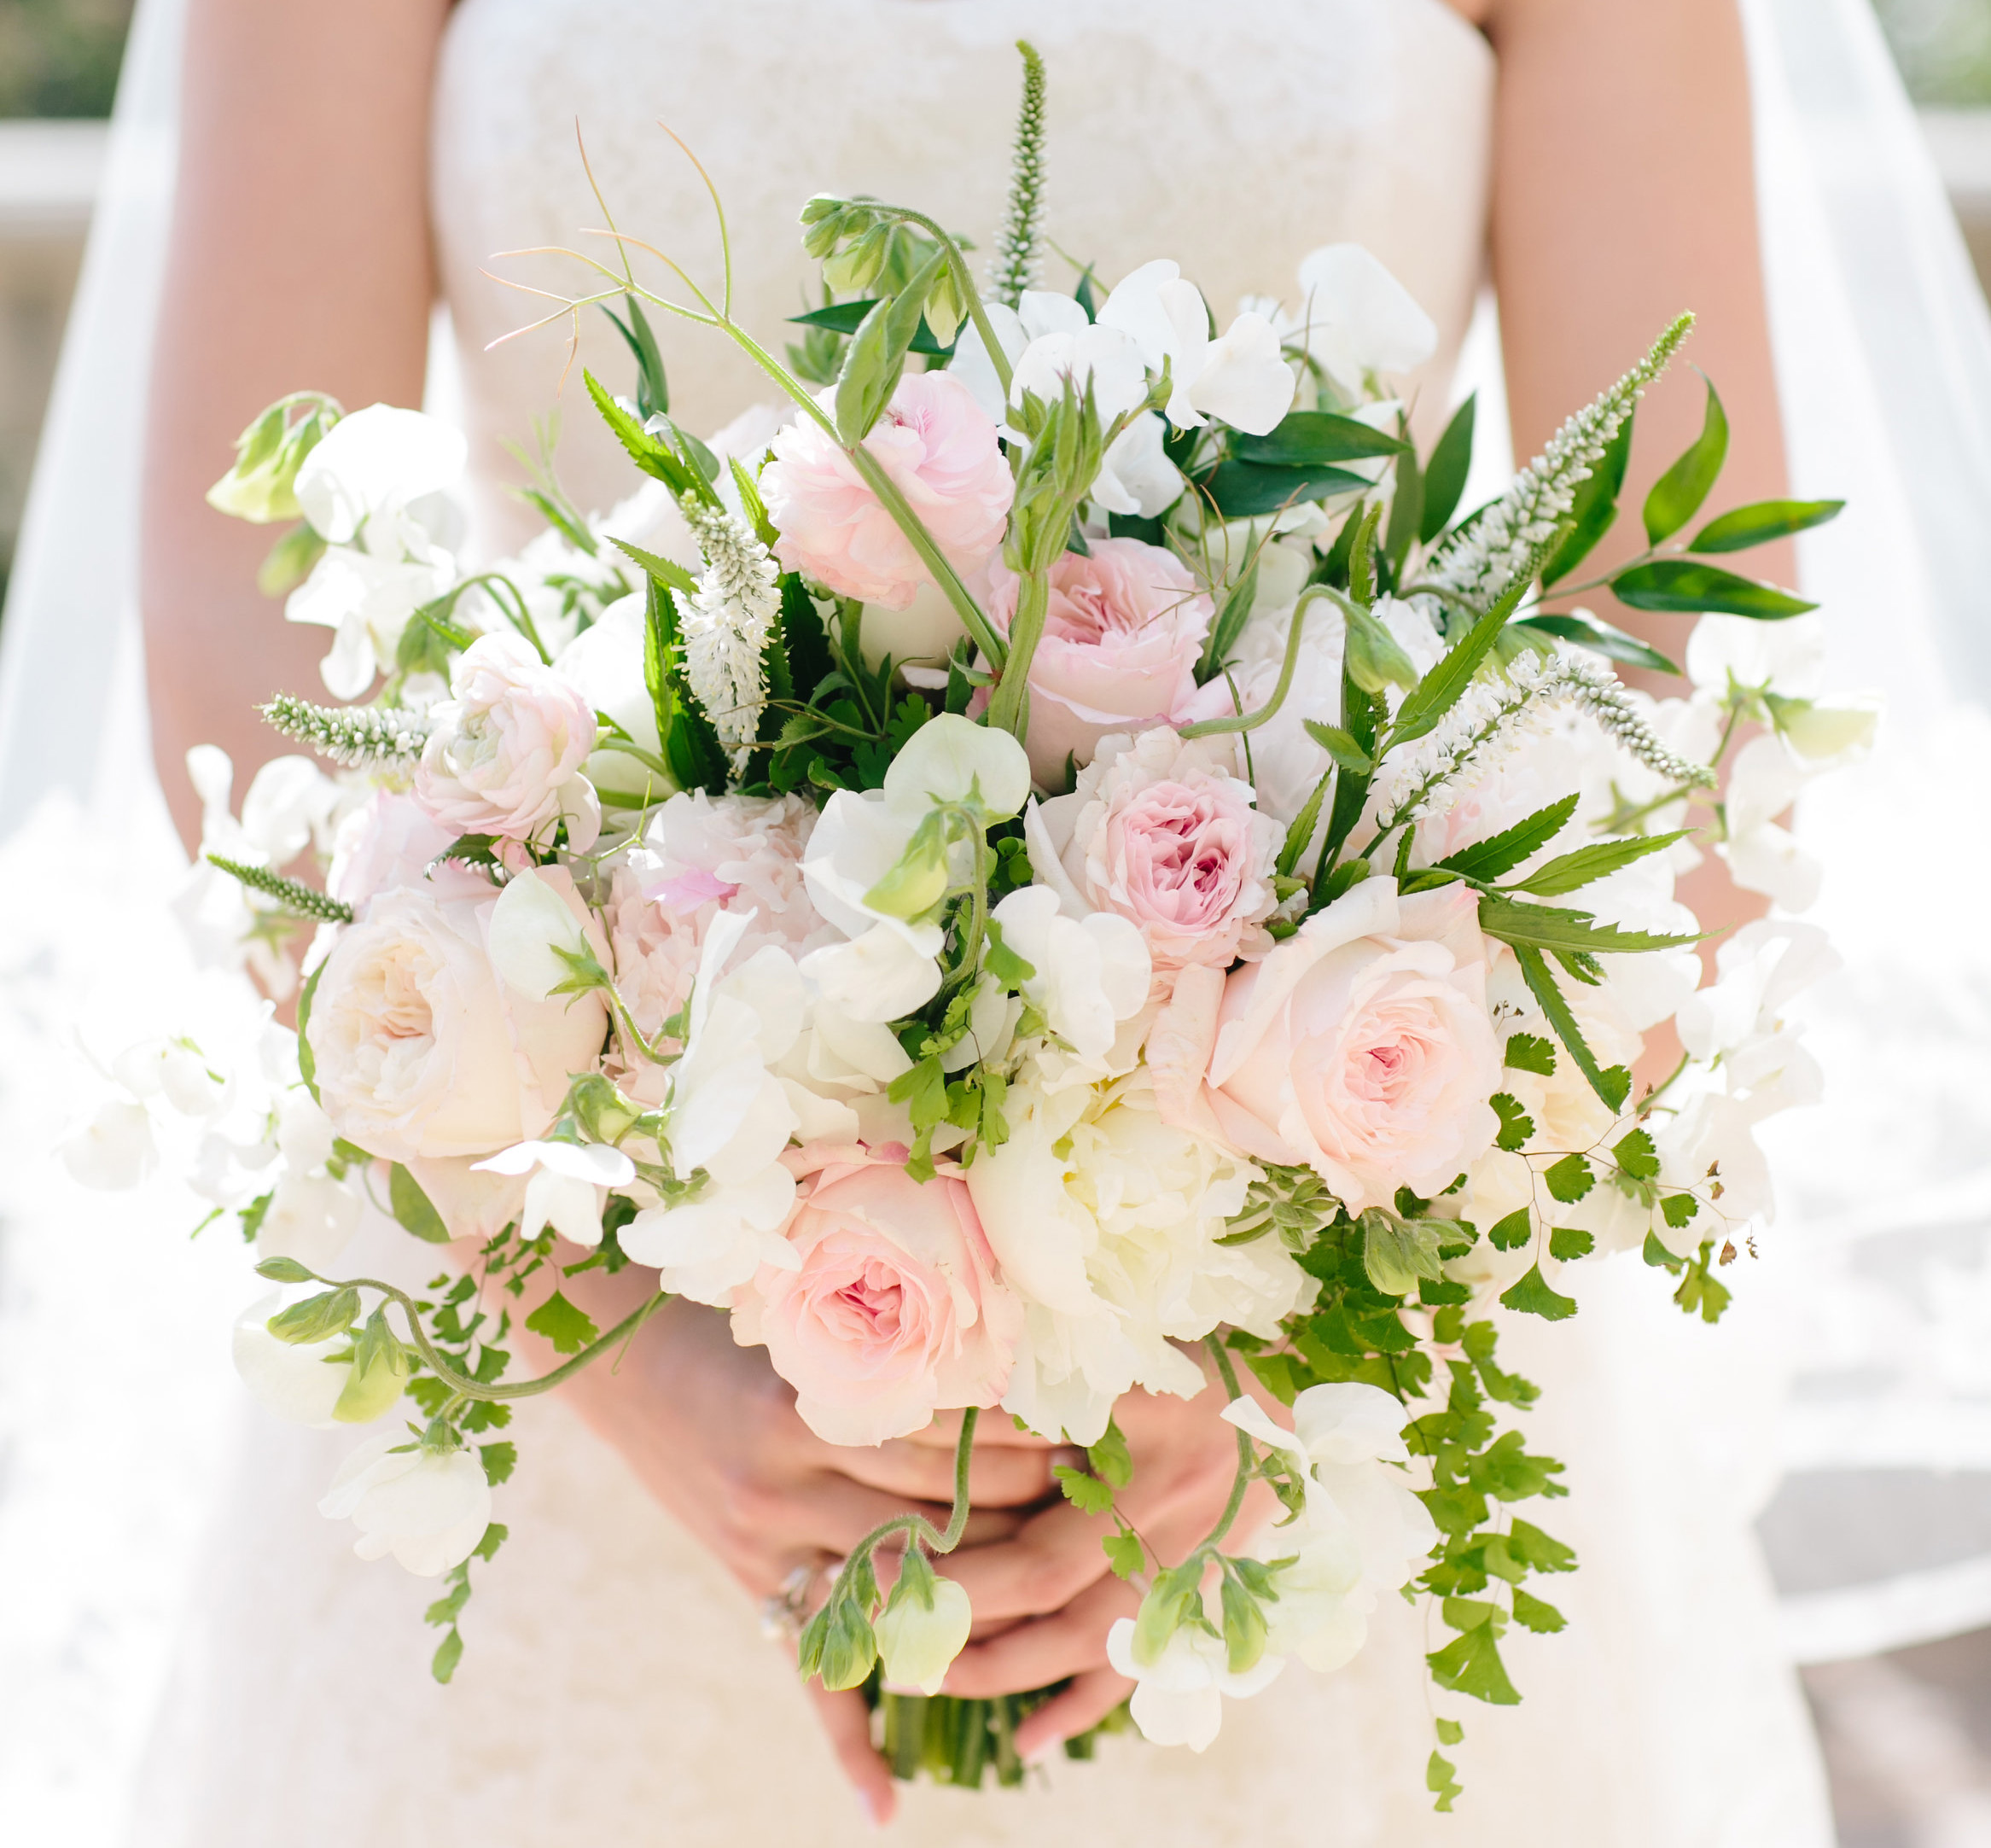 15 Bridal Bouquets In Valentine-Inspired Shades